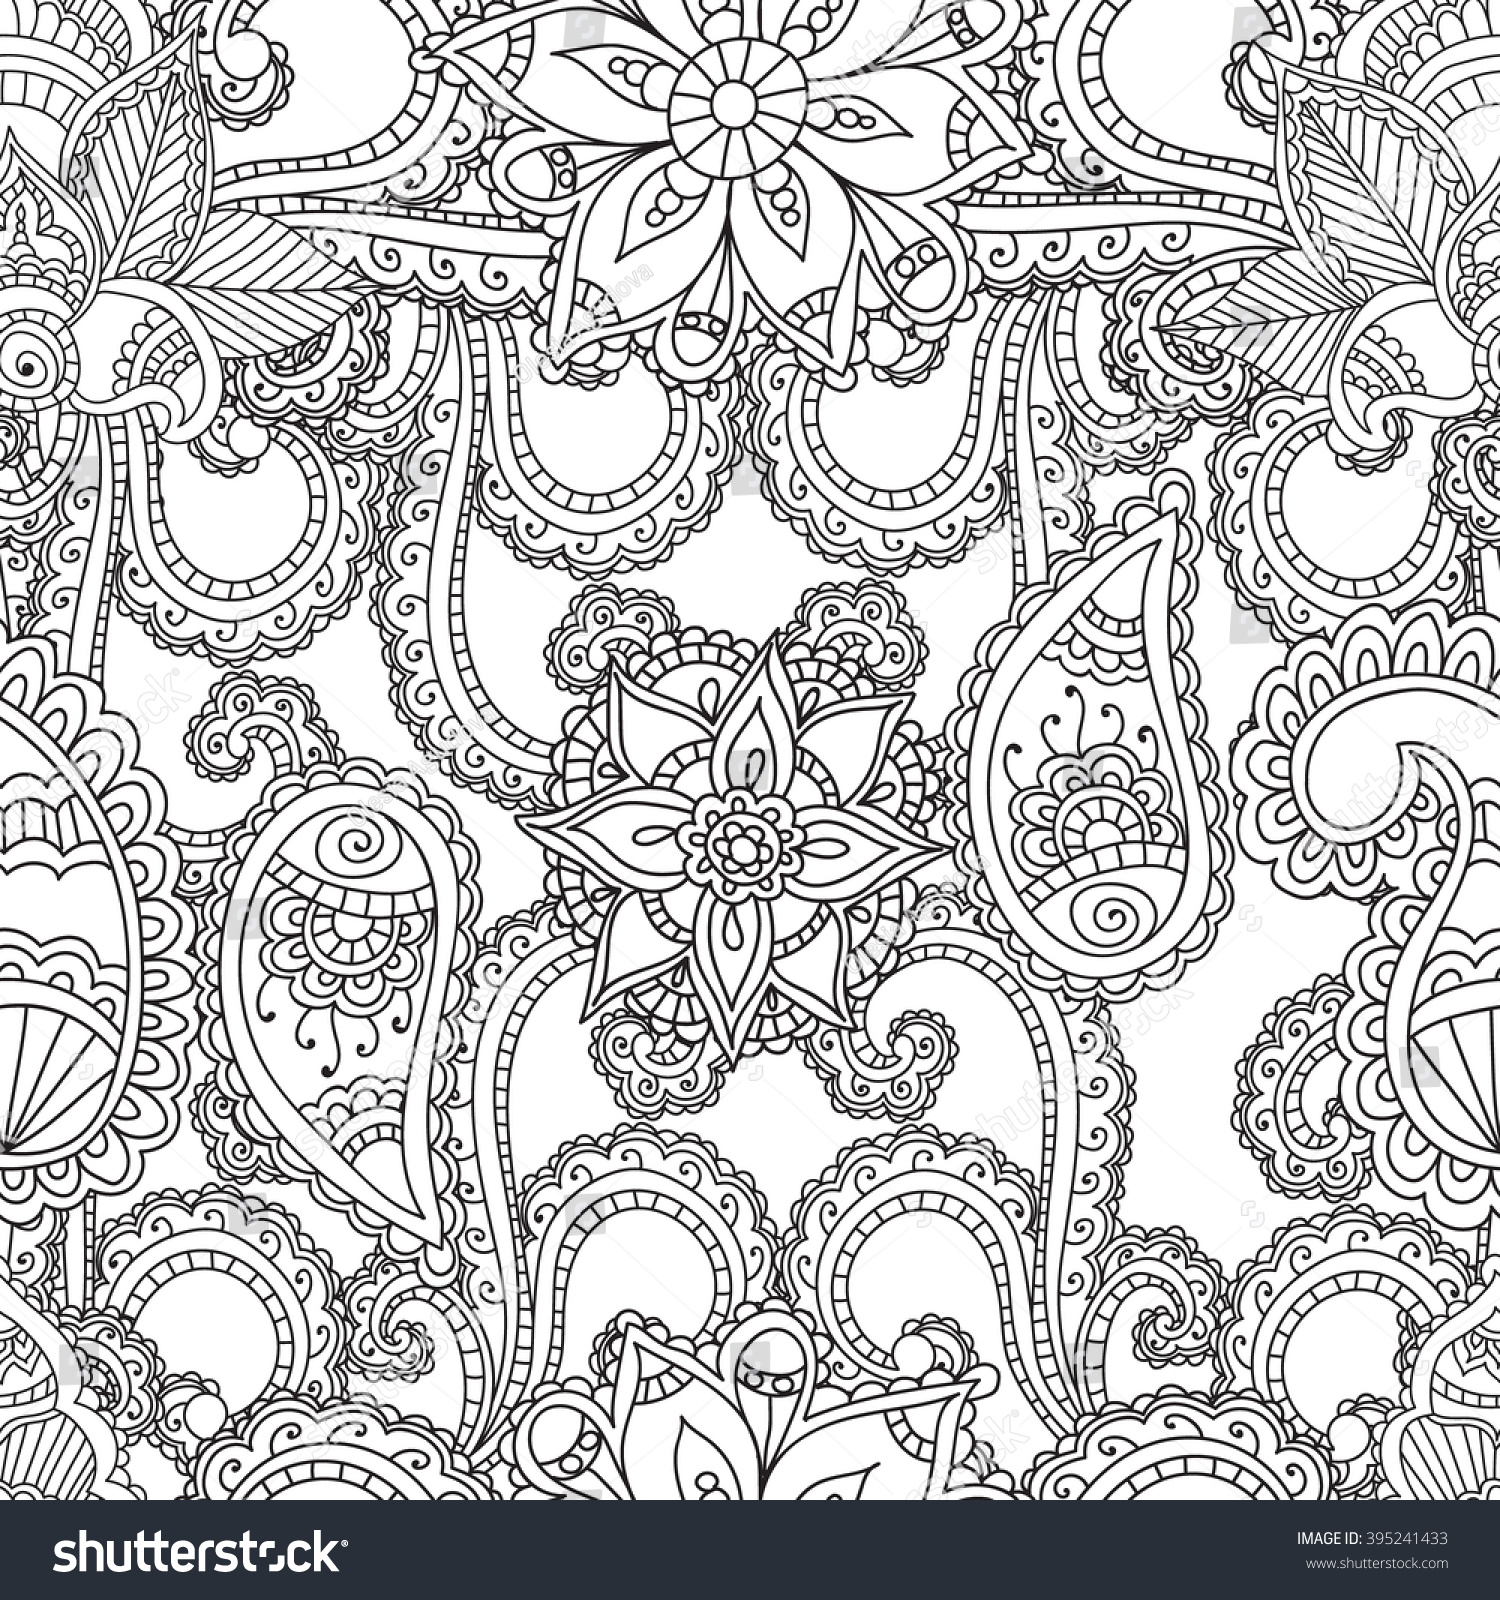 coloring pages for adults seanless patternhenna mehndi doodles abstract floral paisley design elements - Royalty Free Coloring Pages